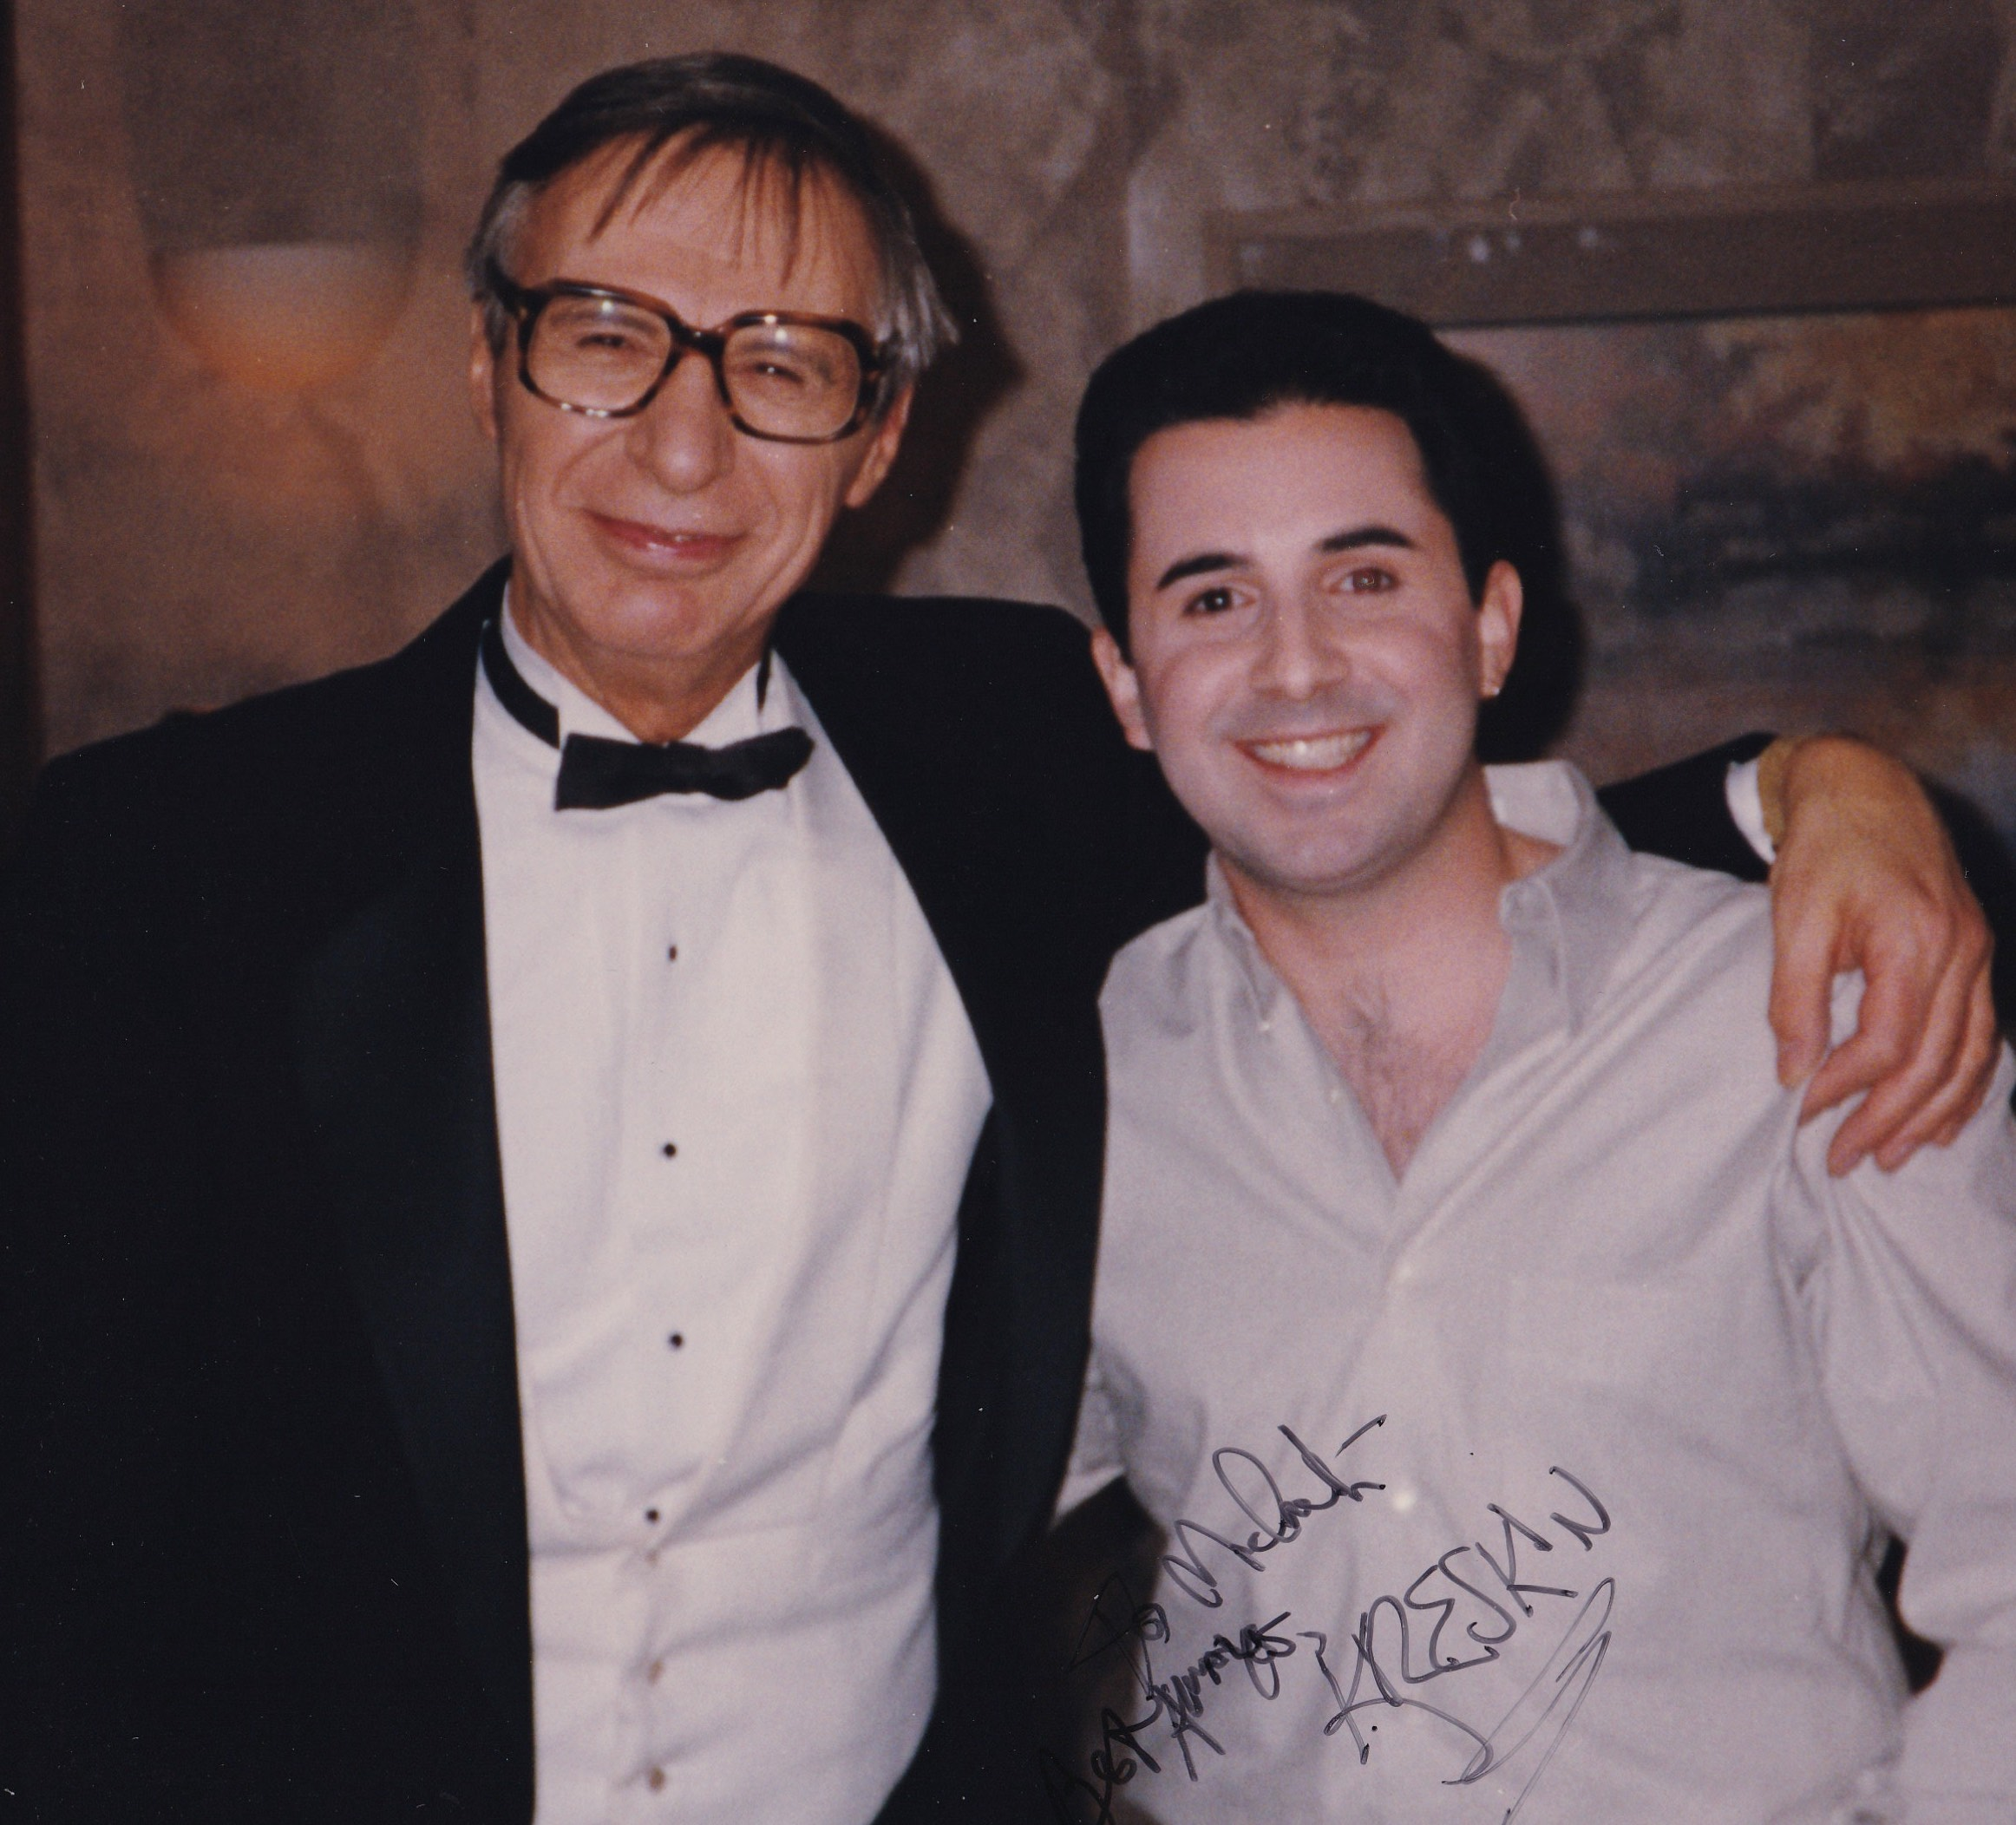 Split bill with The Amazing Kreskin